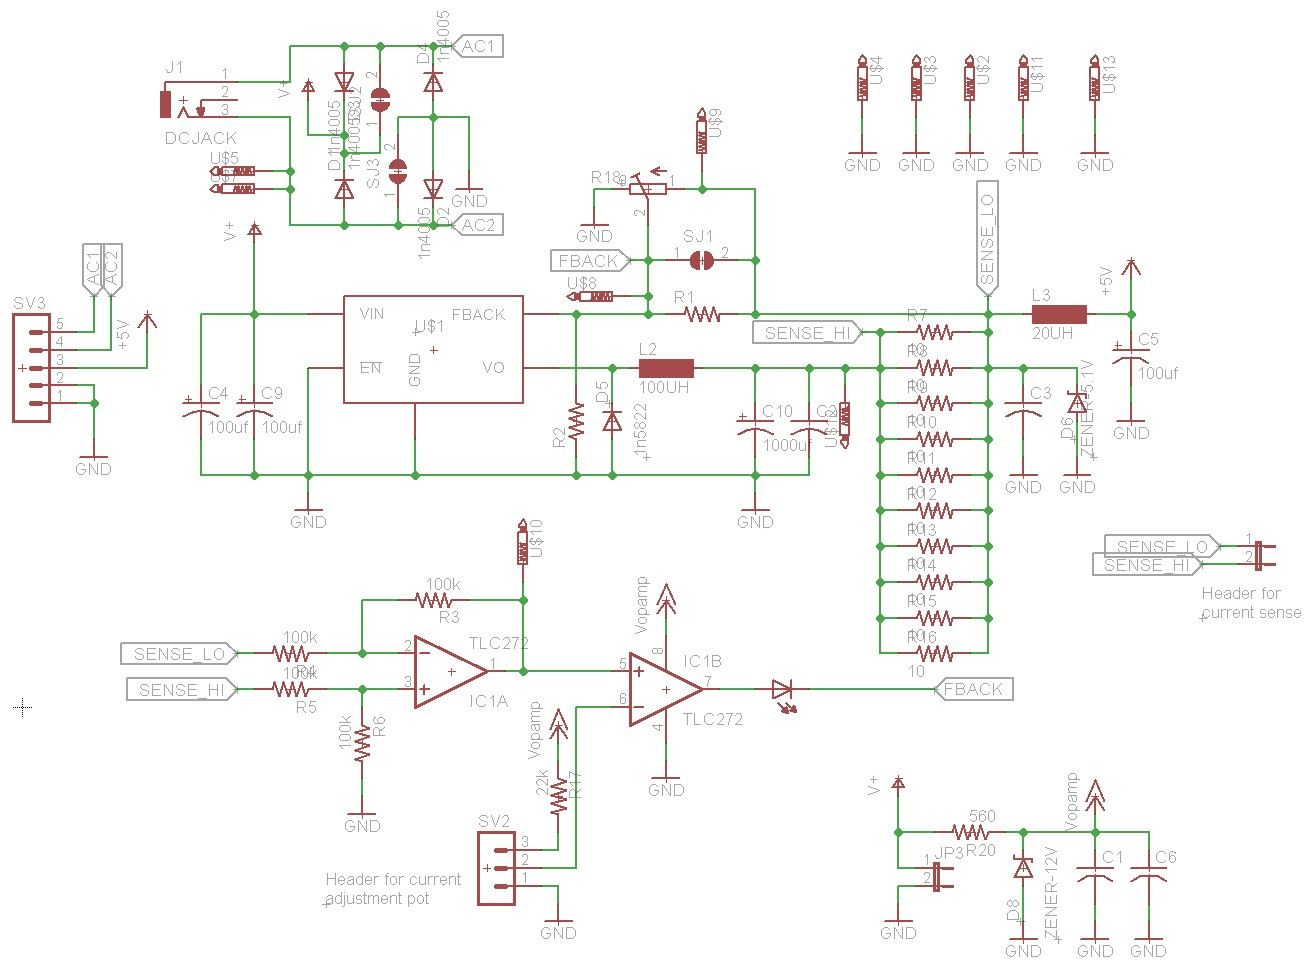 lm2576 constant current power supply symbols arduinolm2576 constant current power supply